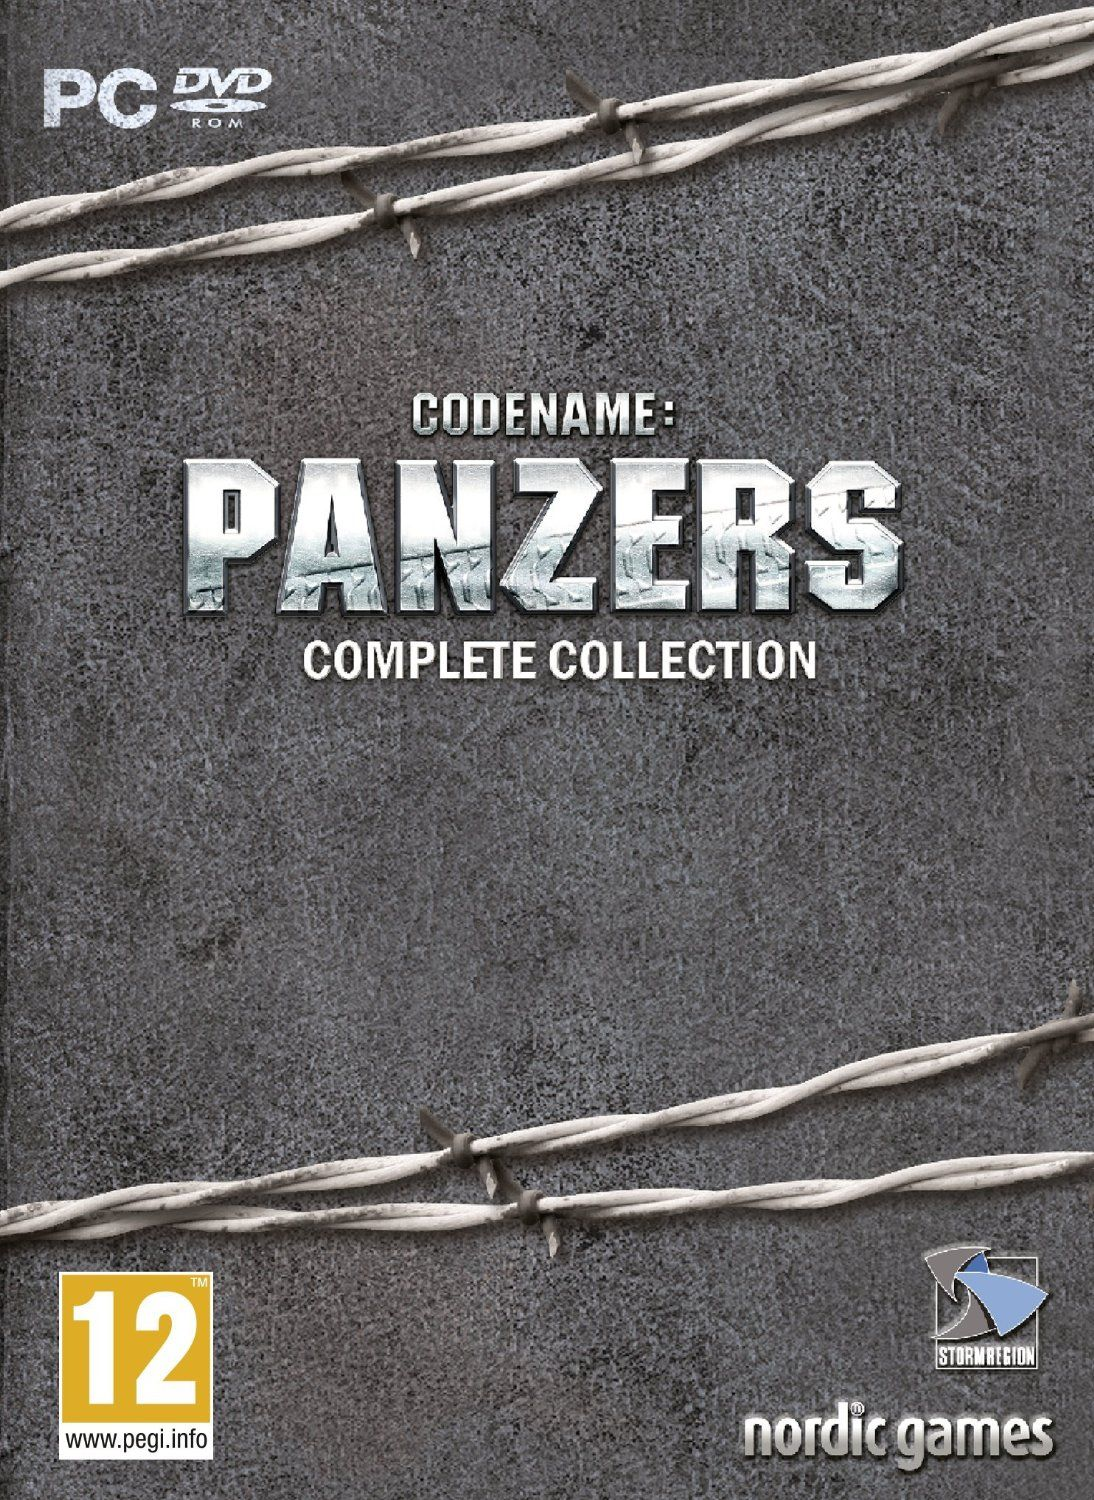 Codename: Panzers Complete Collection (PC) - 1